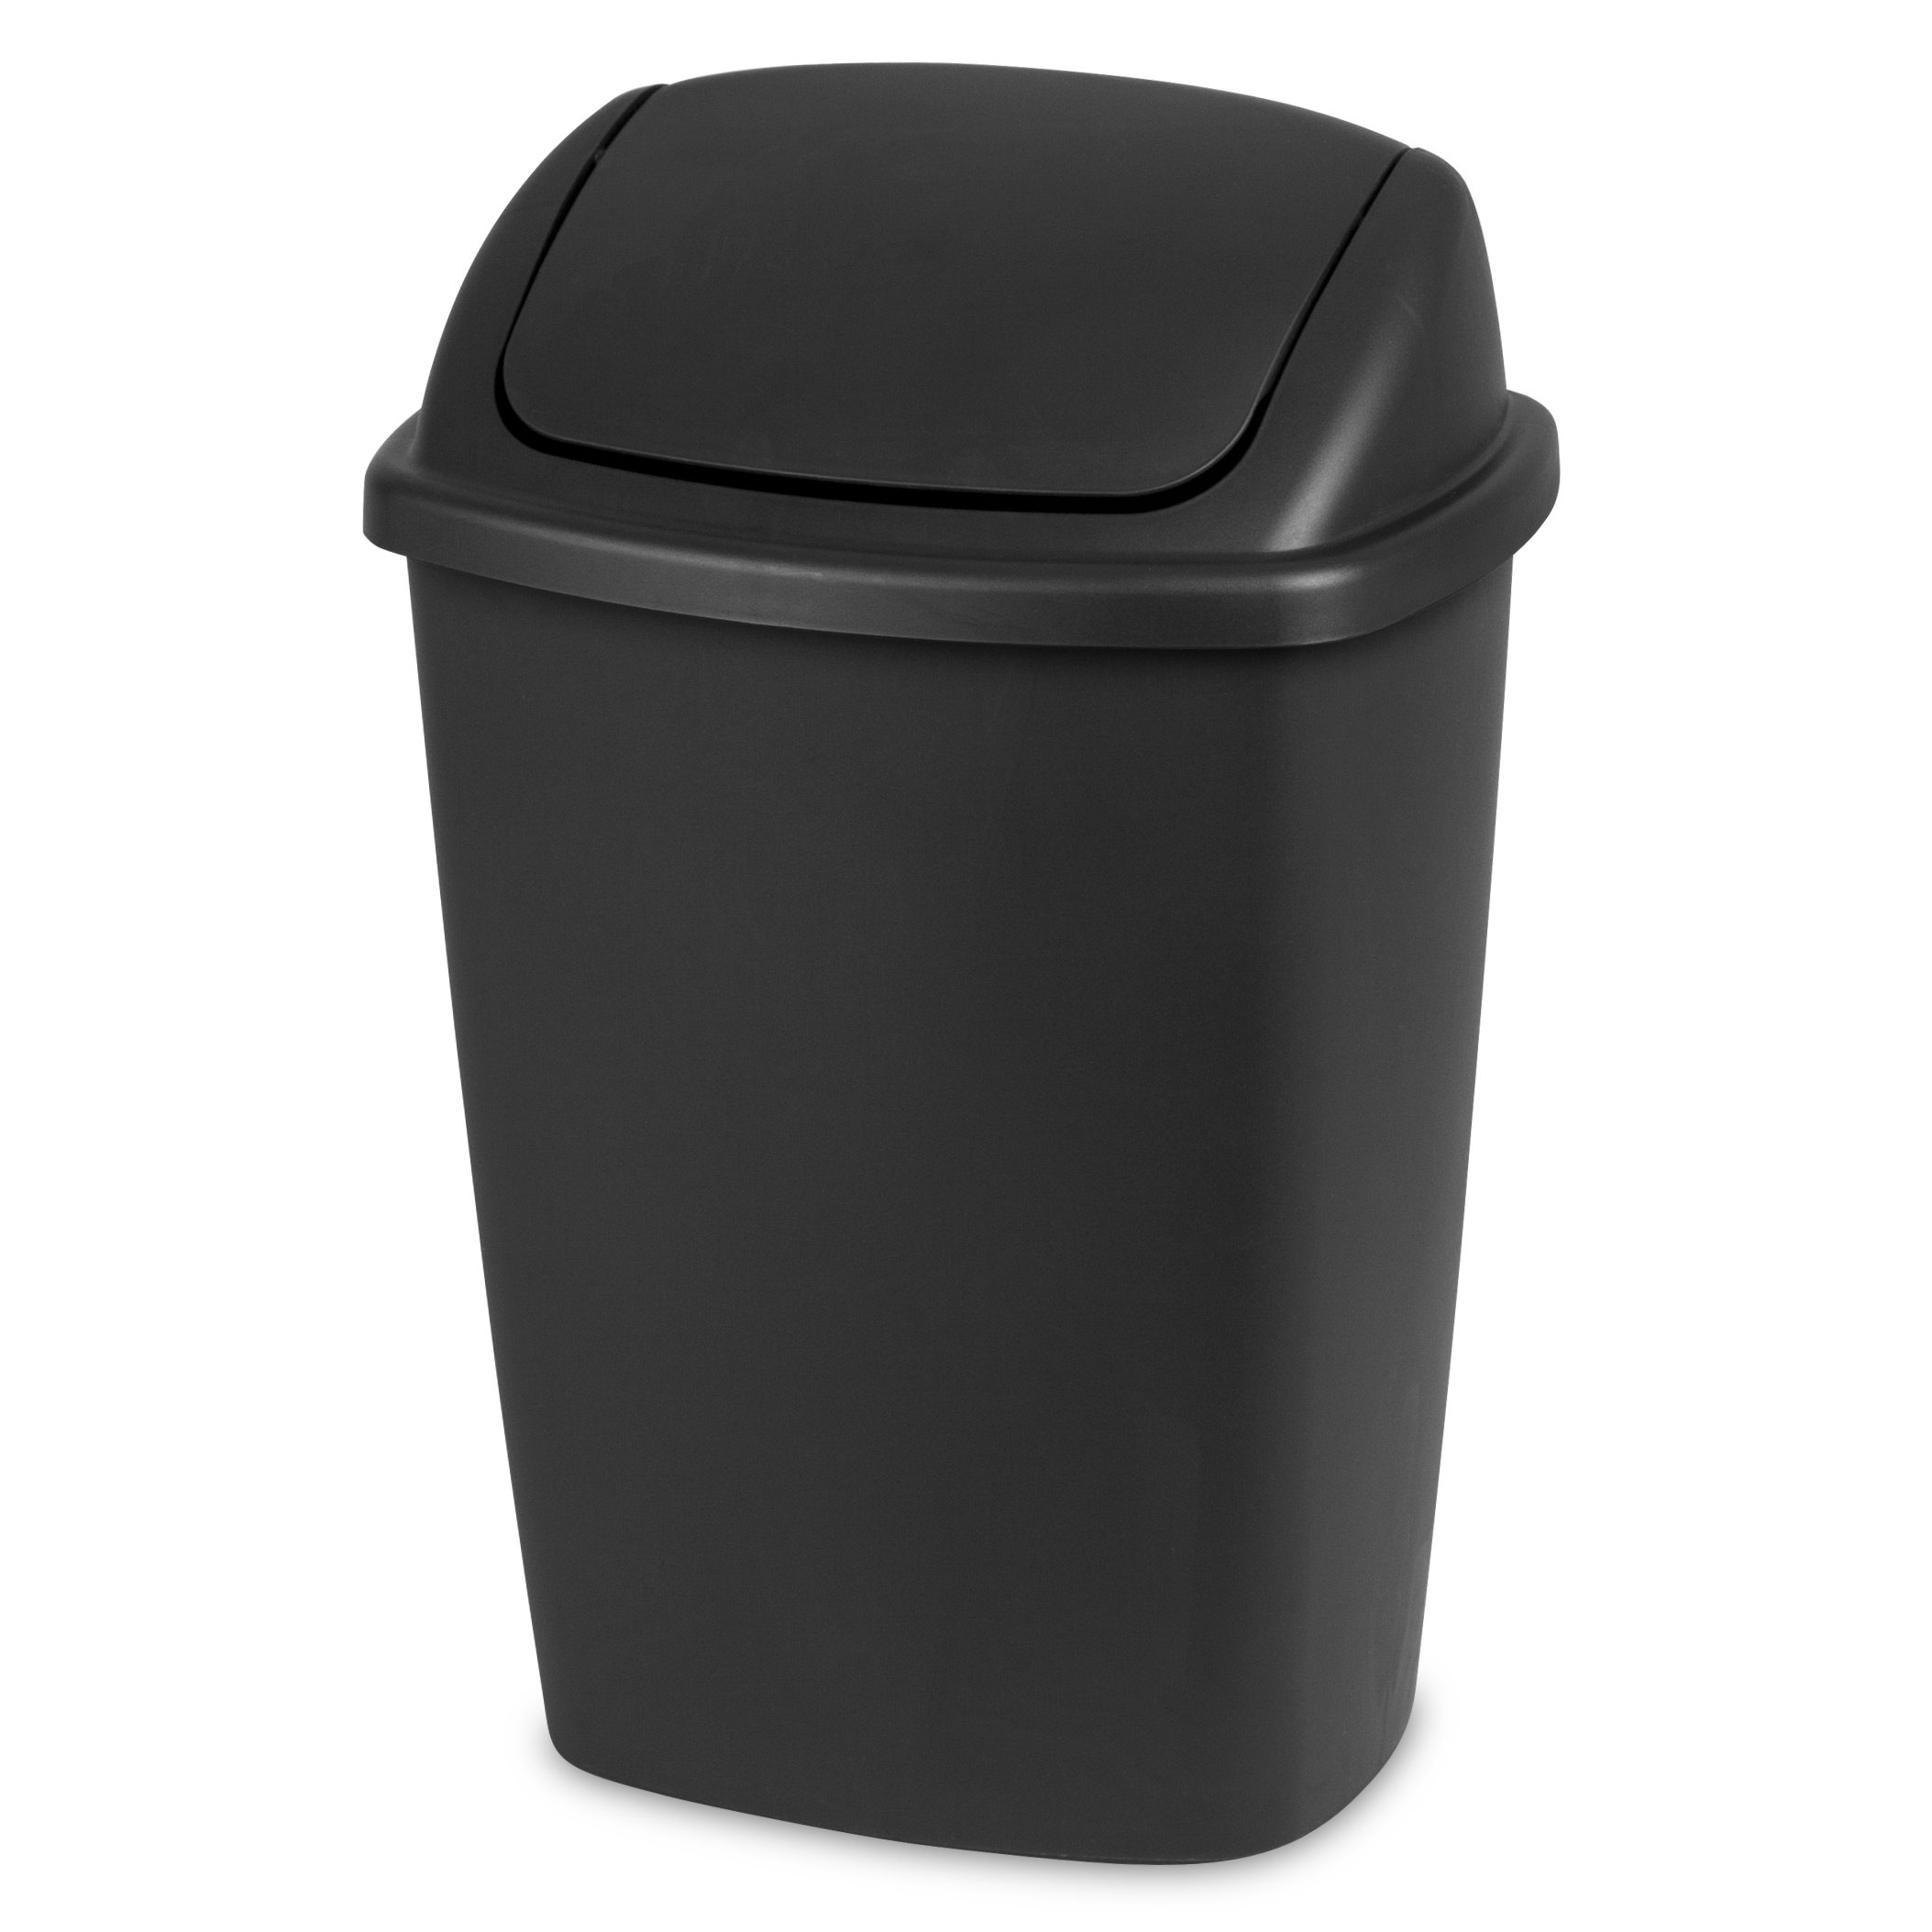 Sterilite, 7.5 Gal. / 28 L SwingTop Wastebasket, Black, Available in Case of 6 or Single Unit